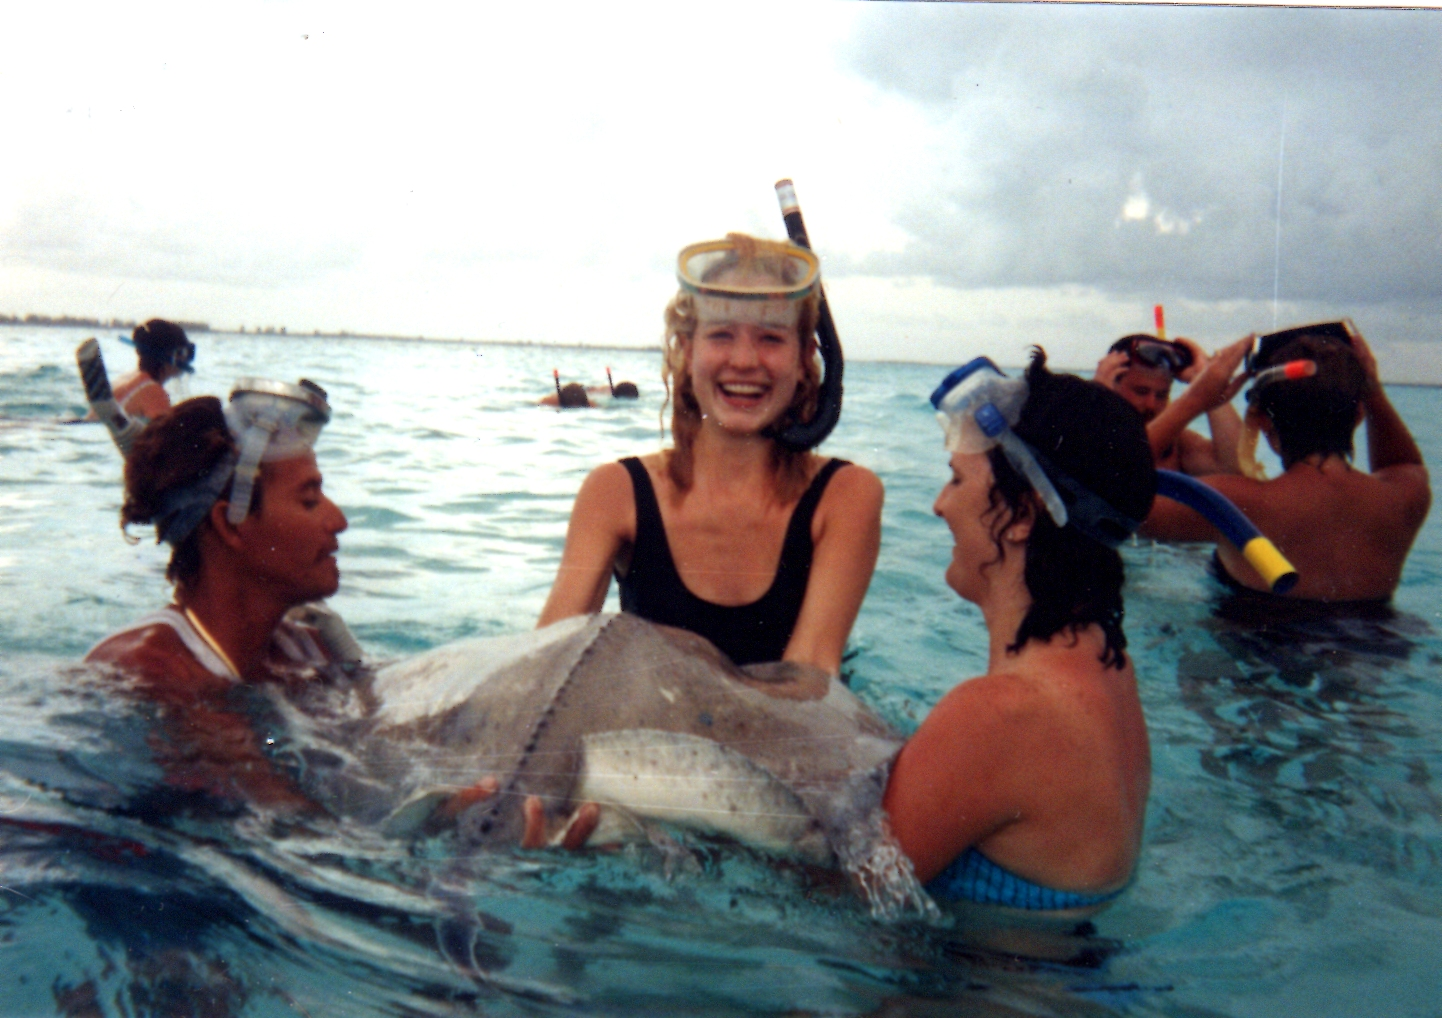 Holding a stingray. (On the left is one of our tour guides.)